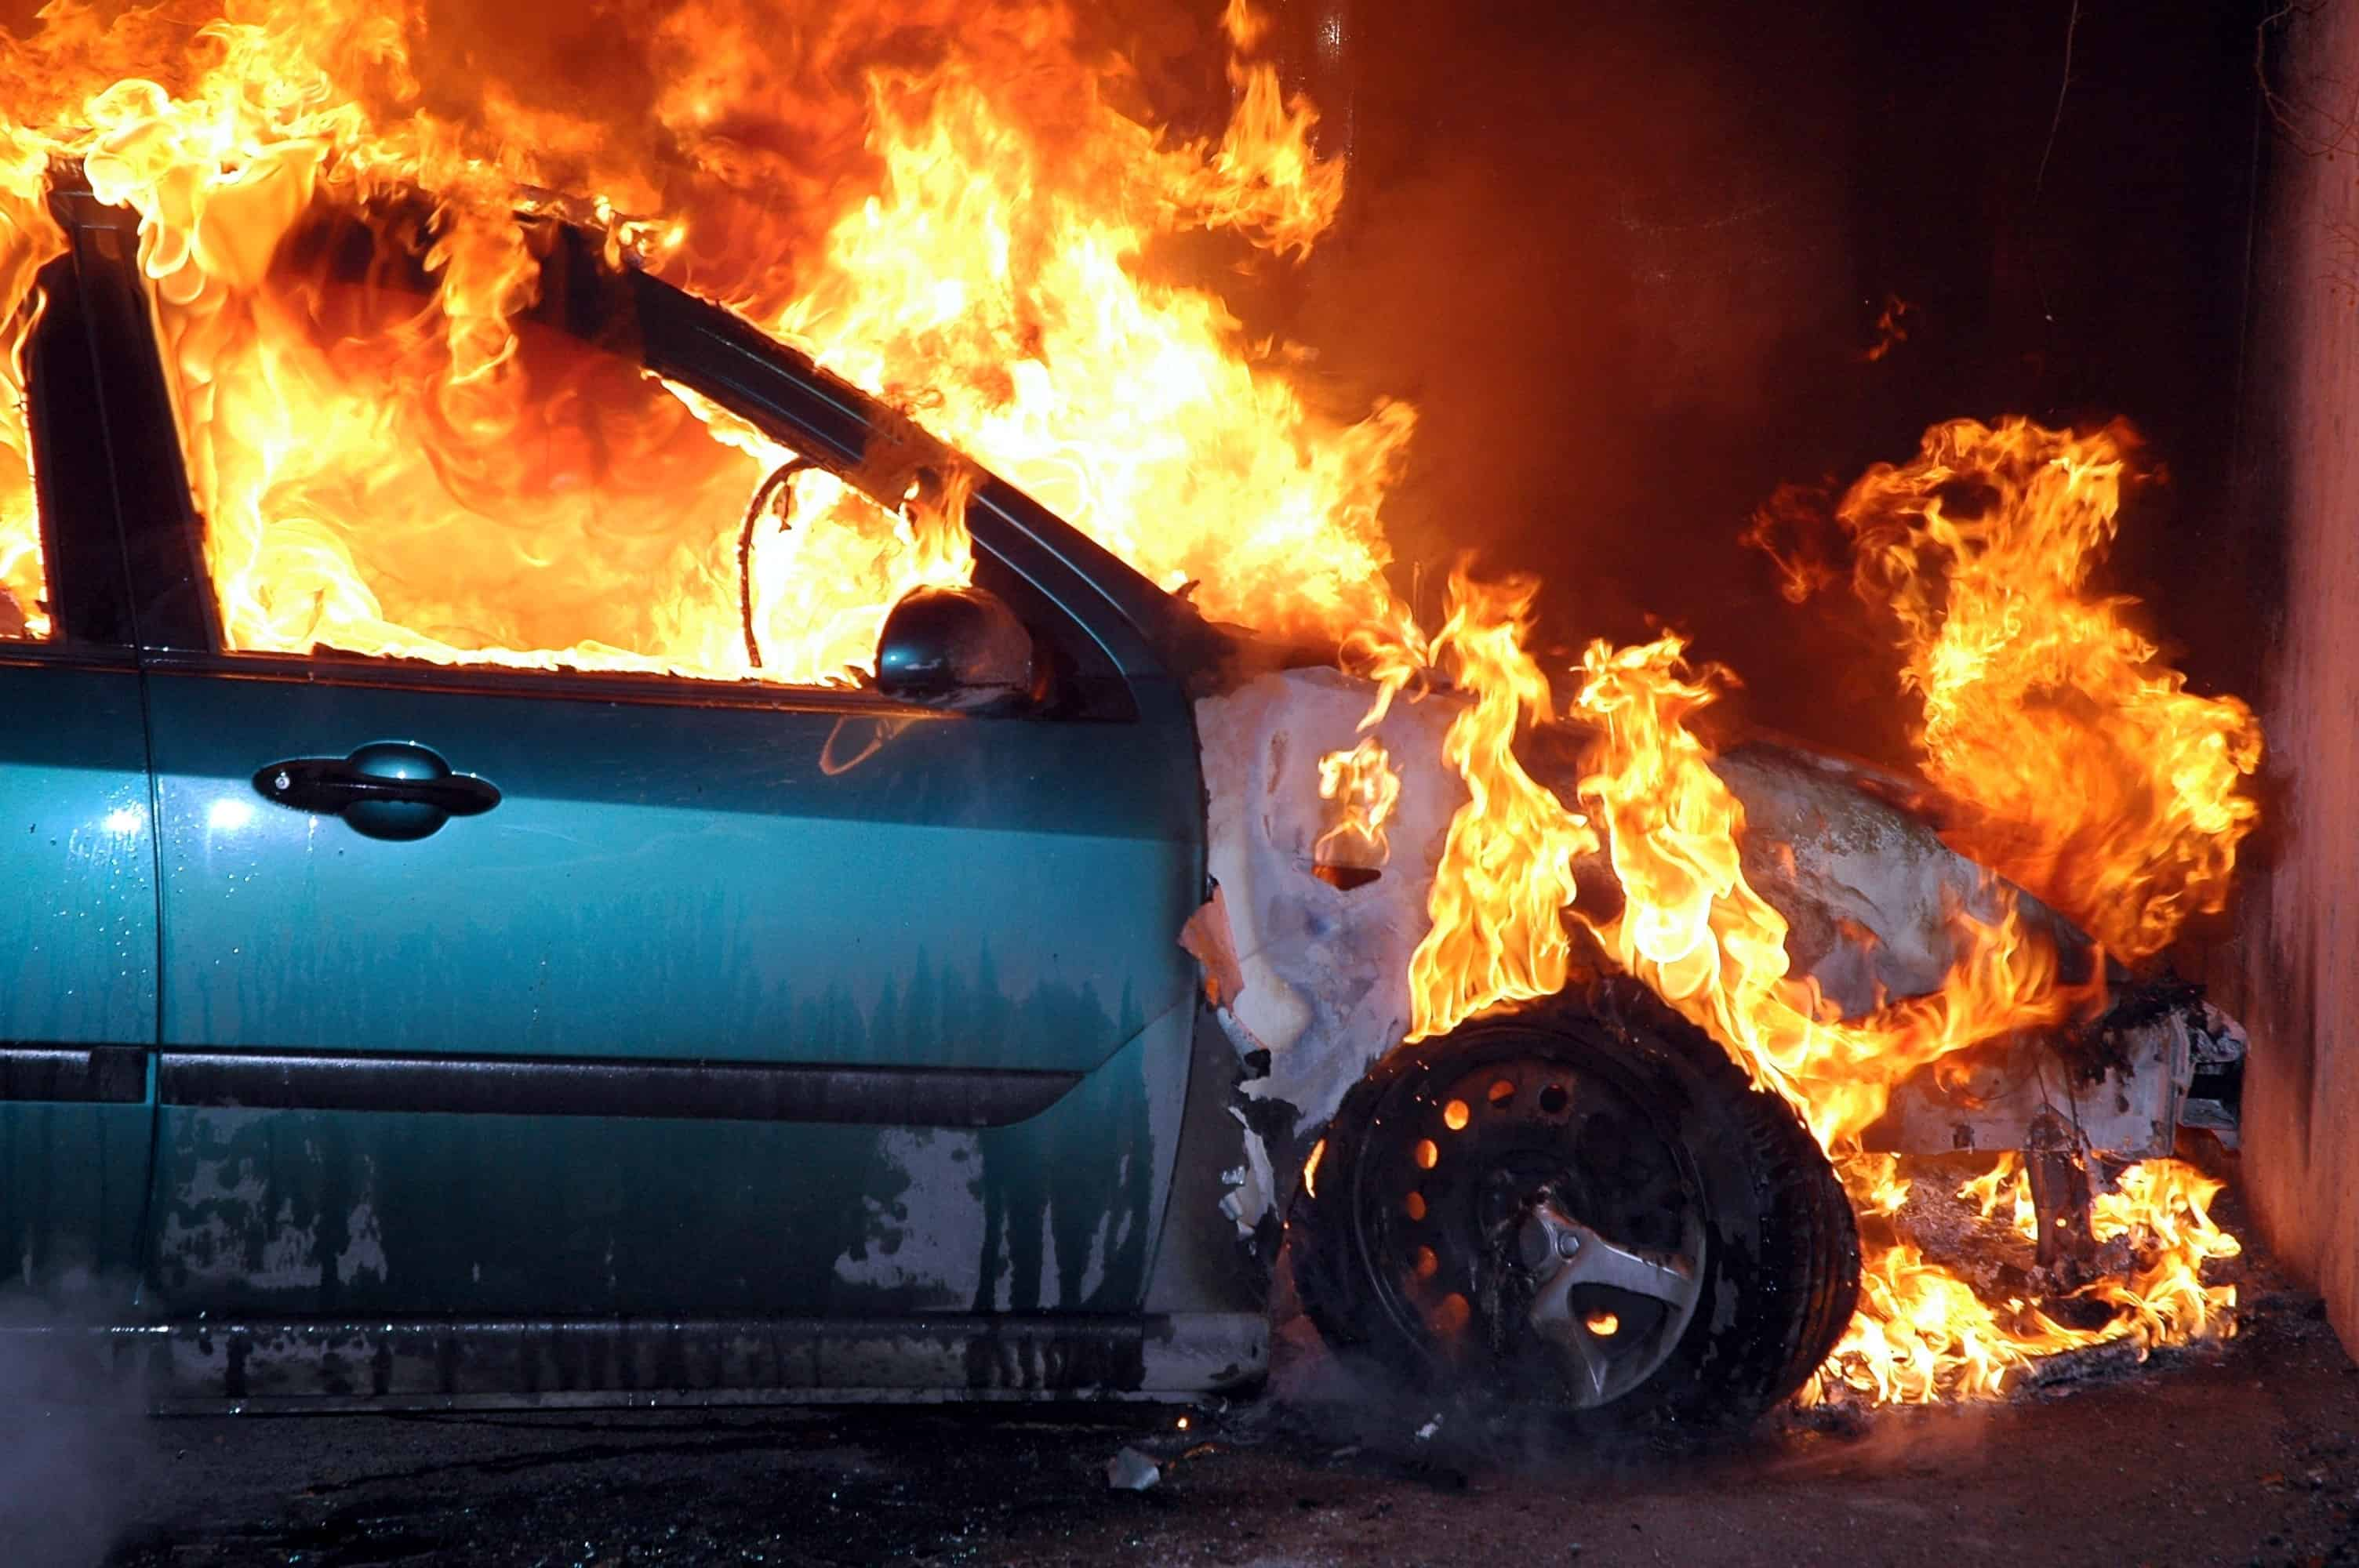 One Killed in Fiery Crash on Highway 99 at Avenue 120